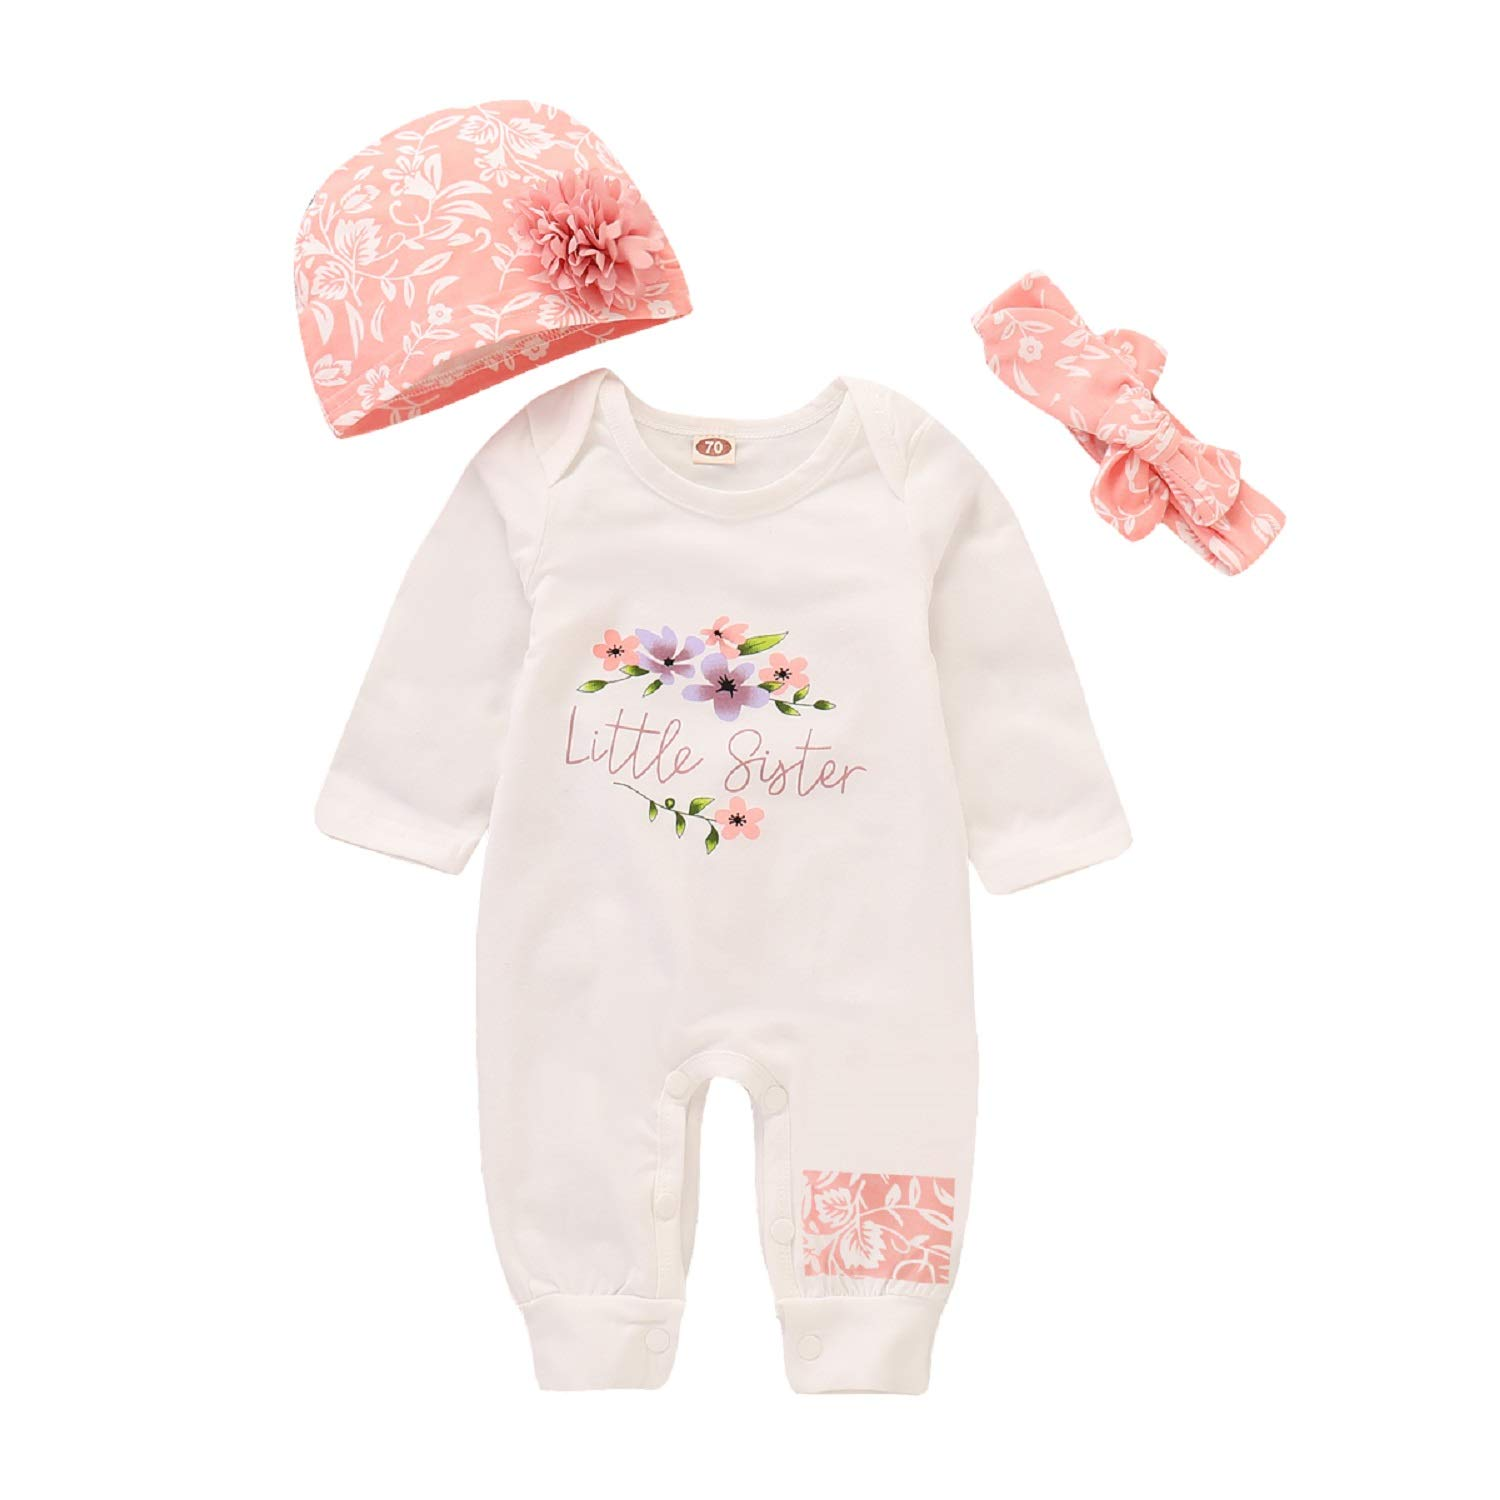 "f2a9ac703 ✿Feature❀ ""Little Sister"" and flower print jumpsuit with floral hat  headband, stylish and adorable ✿Occasion❀ For daily wear and special  occasion like ..."